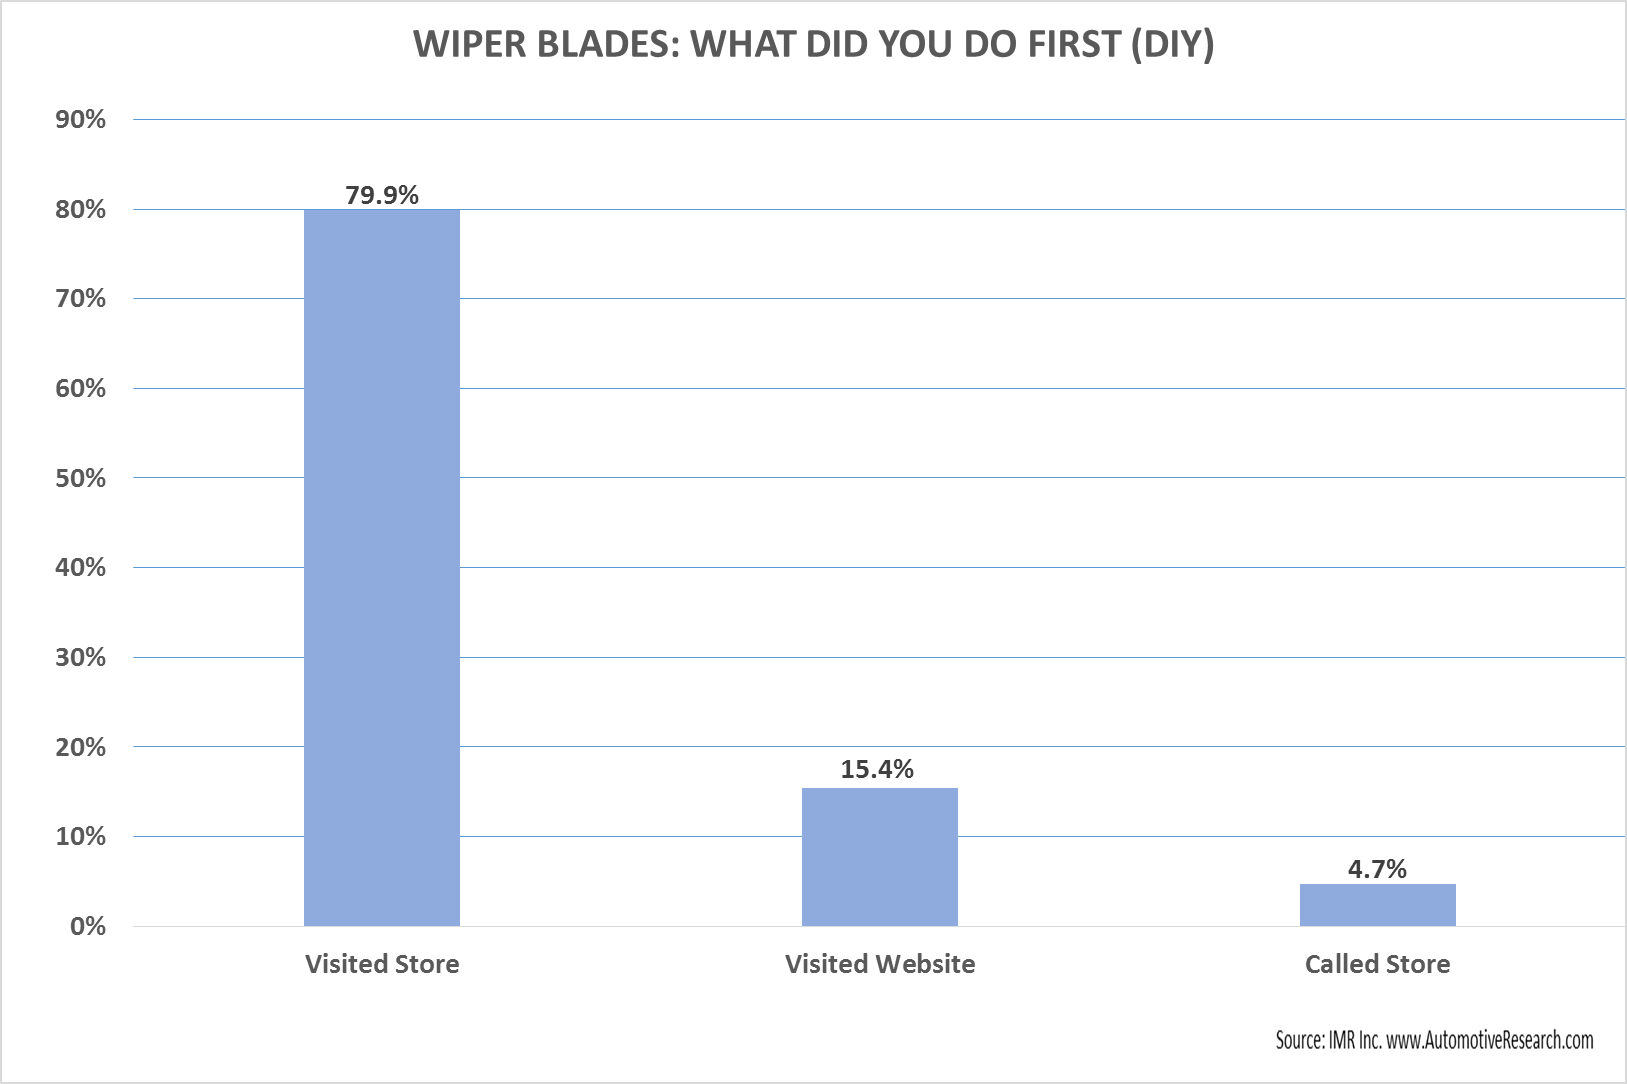 Automotive Market Research Study - Vehicle Wiper Blade Consumer 1st Action